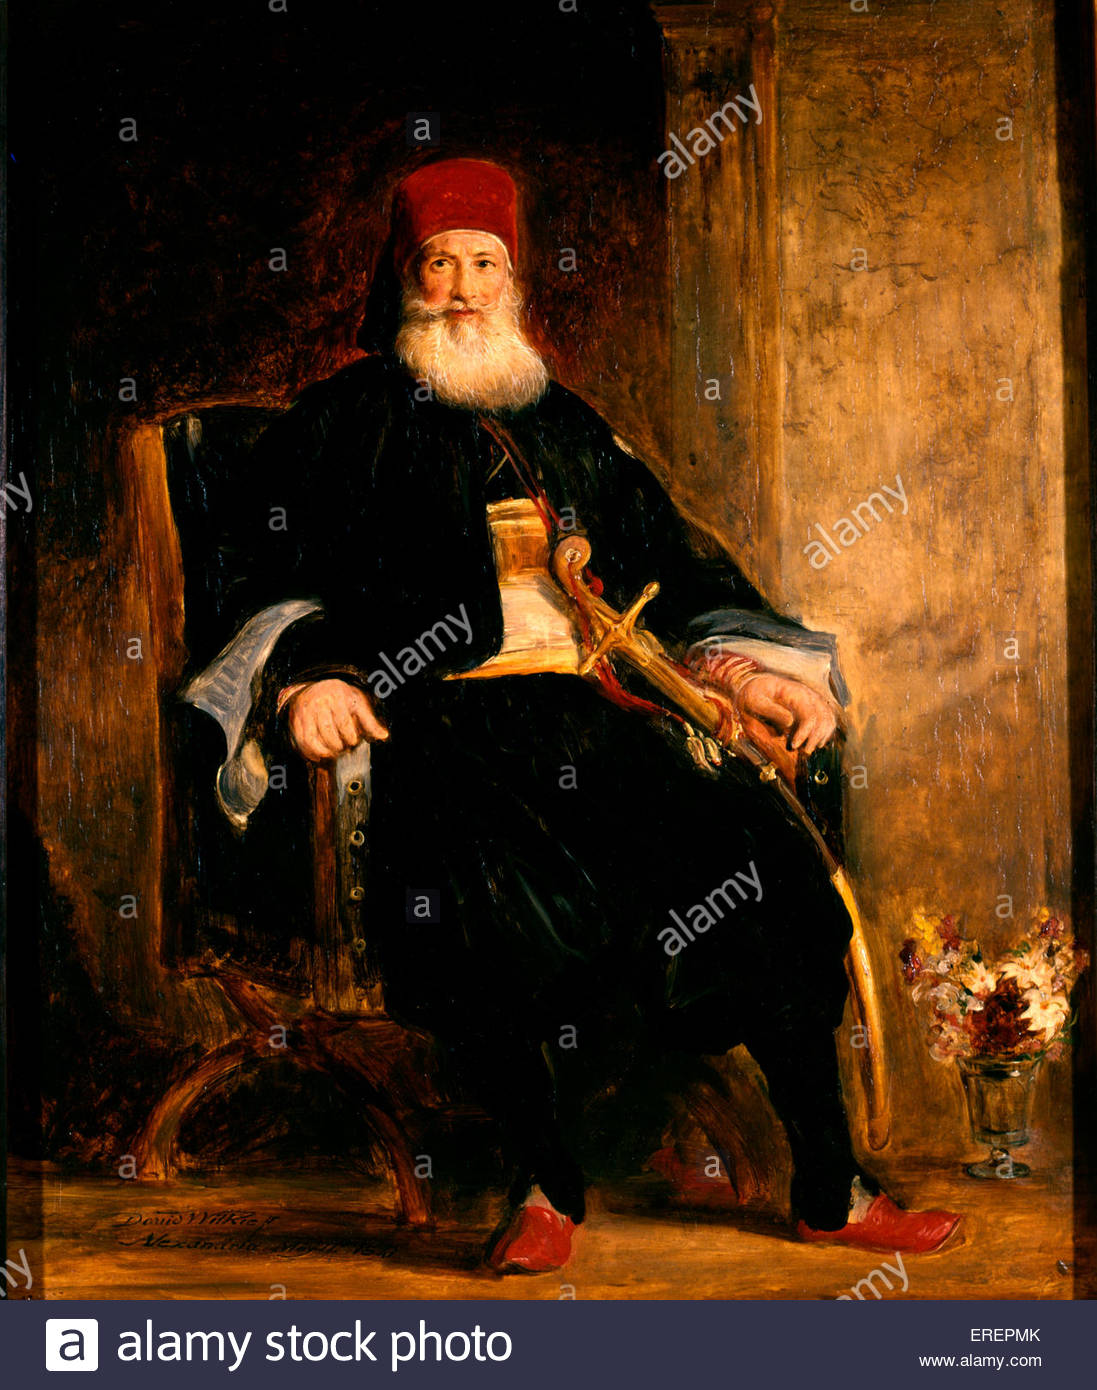 His Highness Muhemed Ali, Pacha of Egypt by Sir David Wilkie, 1841. Oil on board, support: 610 x 508 mm. MA: Muhammad - Stock Image